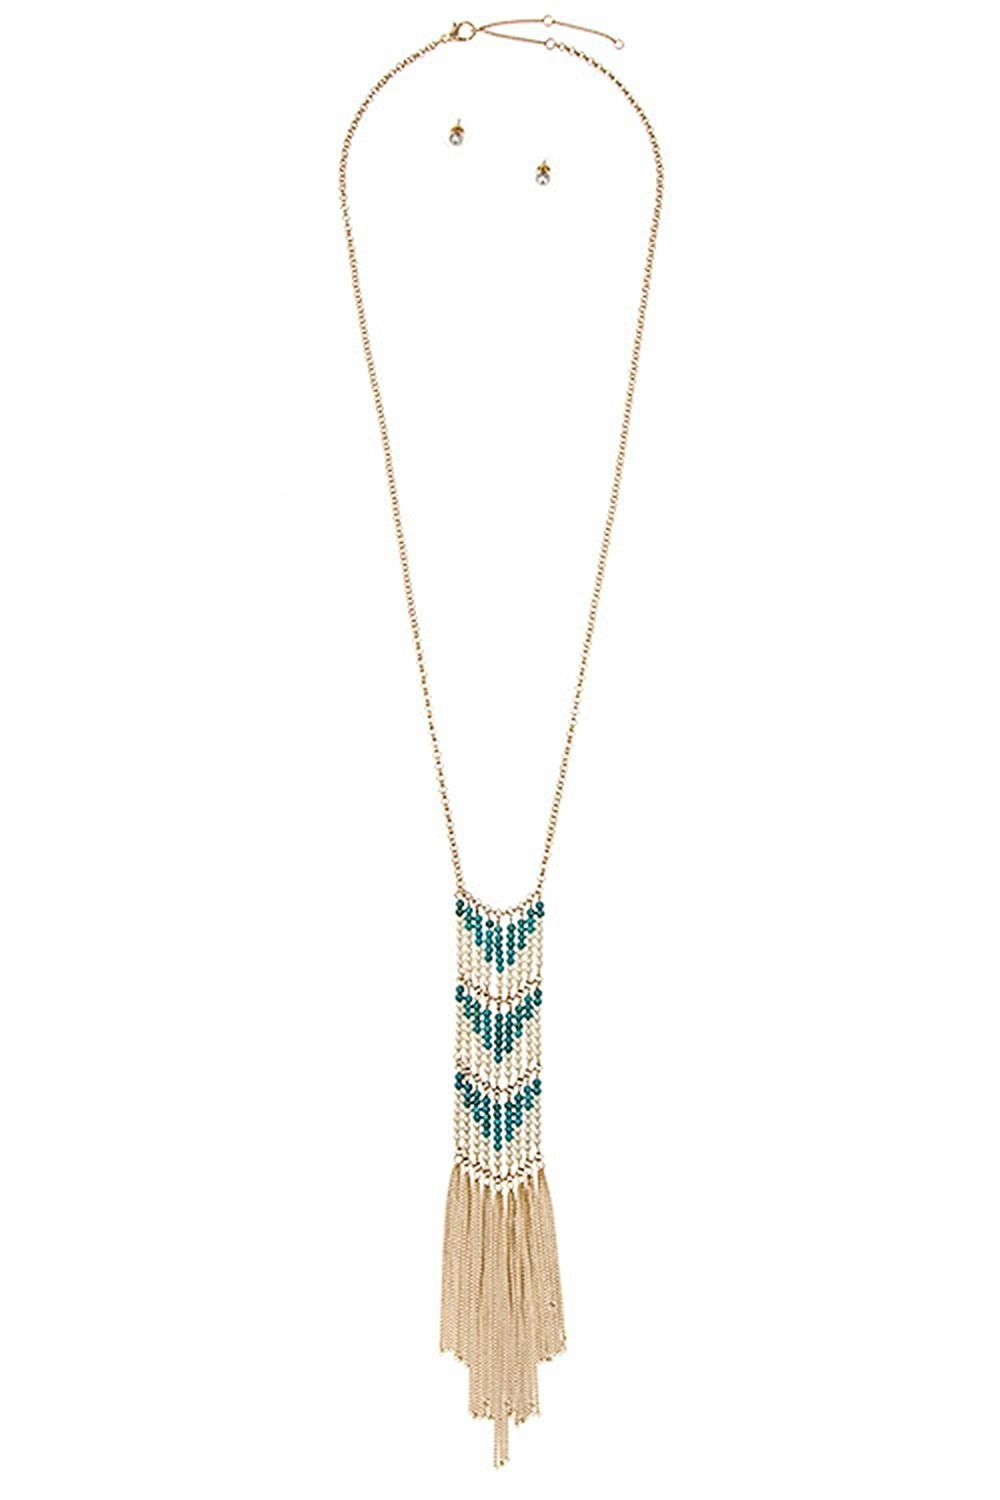 Karmas canvas chevron pearl bead pattern chain fringe long necklace